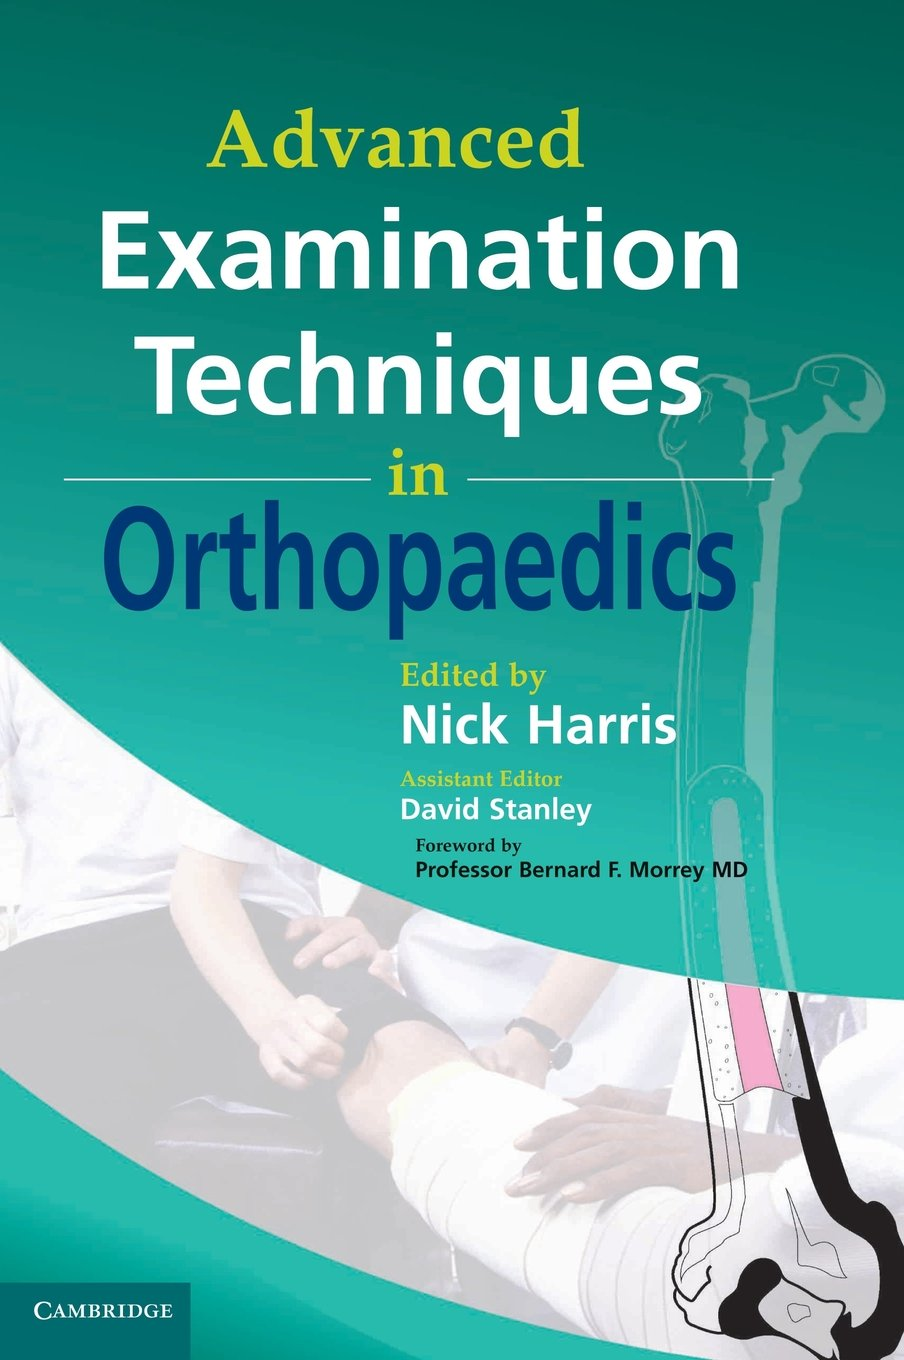 Buy Advanced Examination Techniques in Orthopaedics Book Online at Low  Prices in India | Advanced Examination Techniques in Orthopaedics Reviews &  Ratings ...